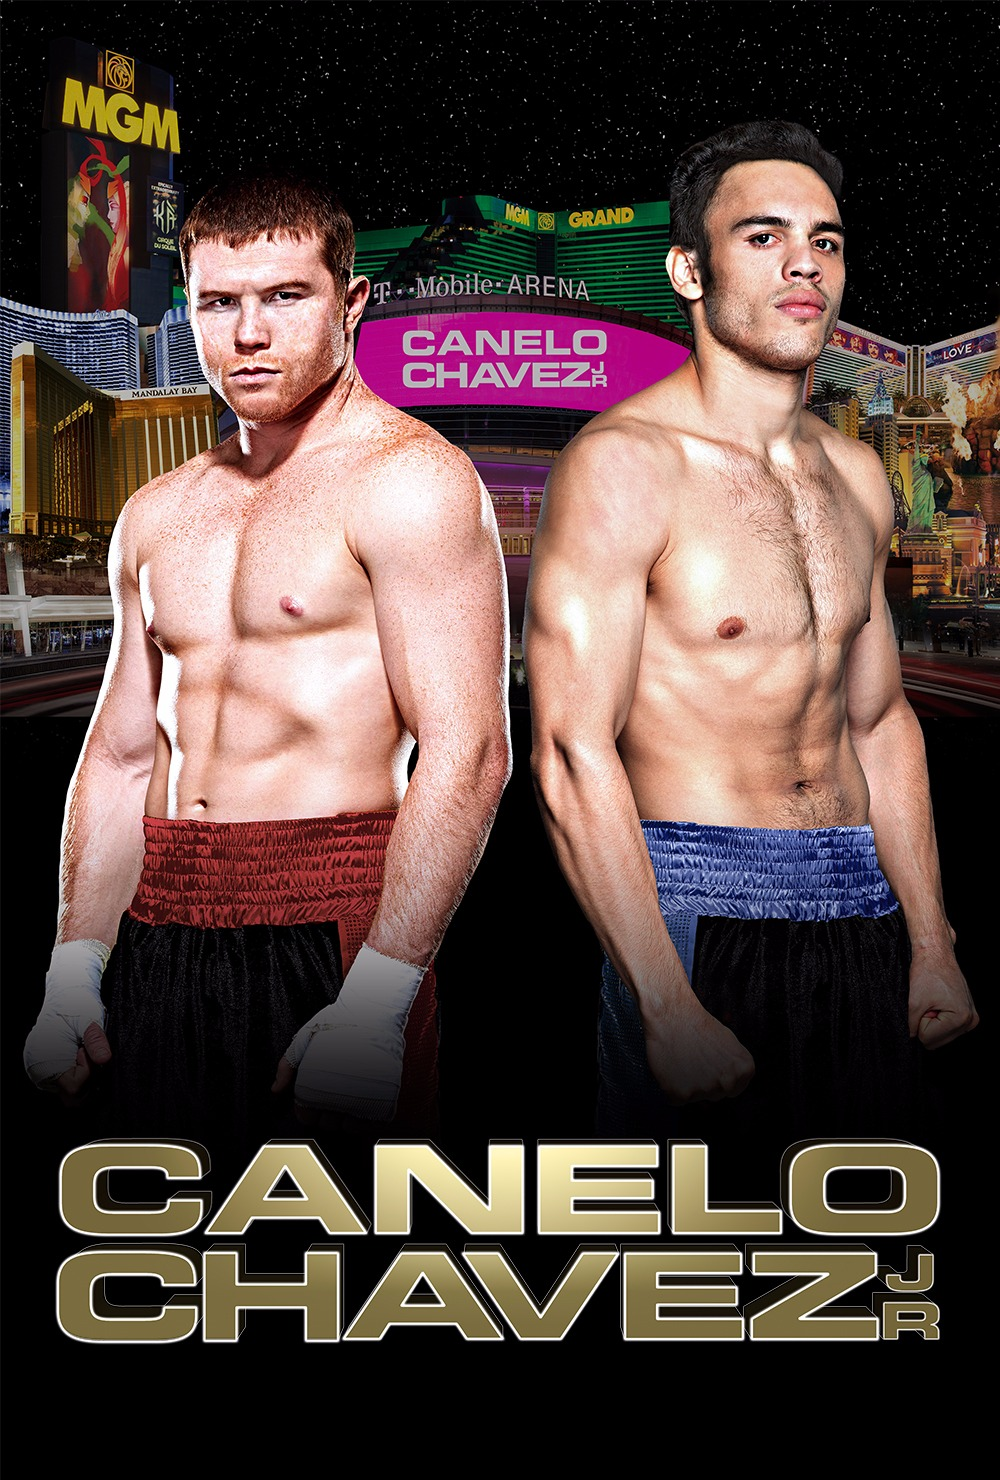 Canelo vs. Chavez Jr